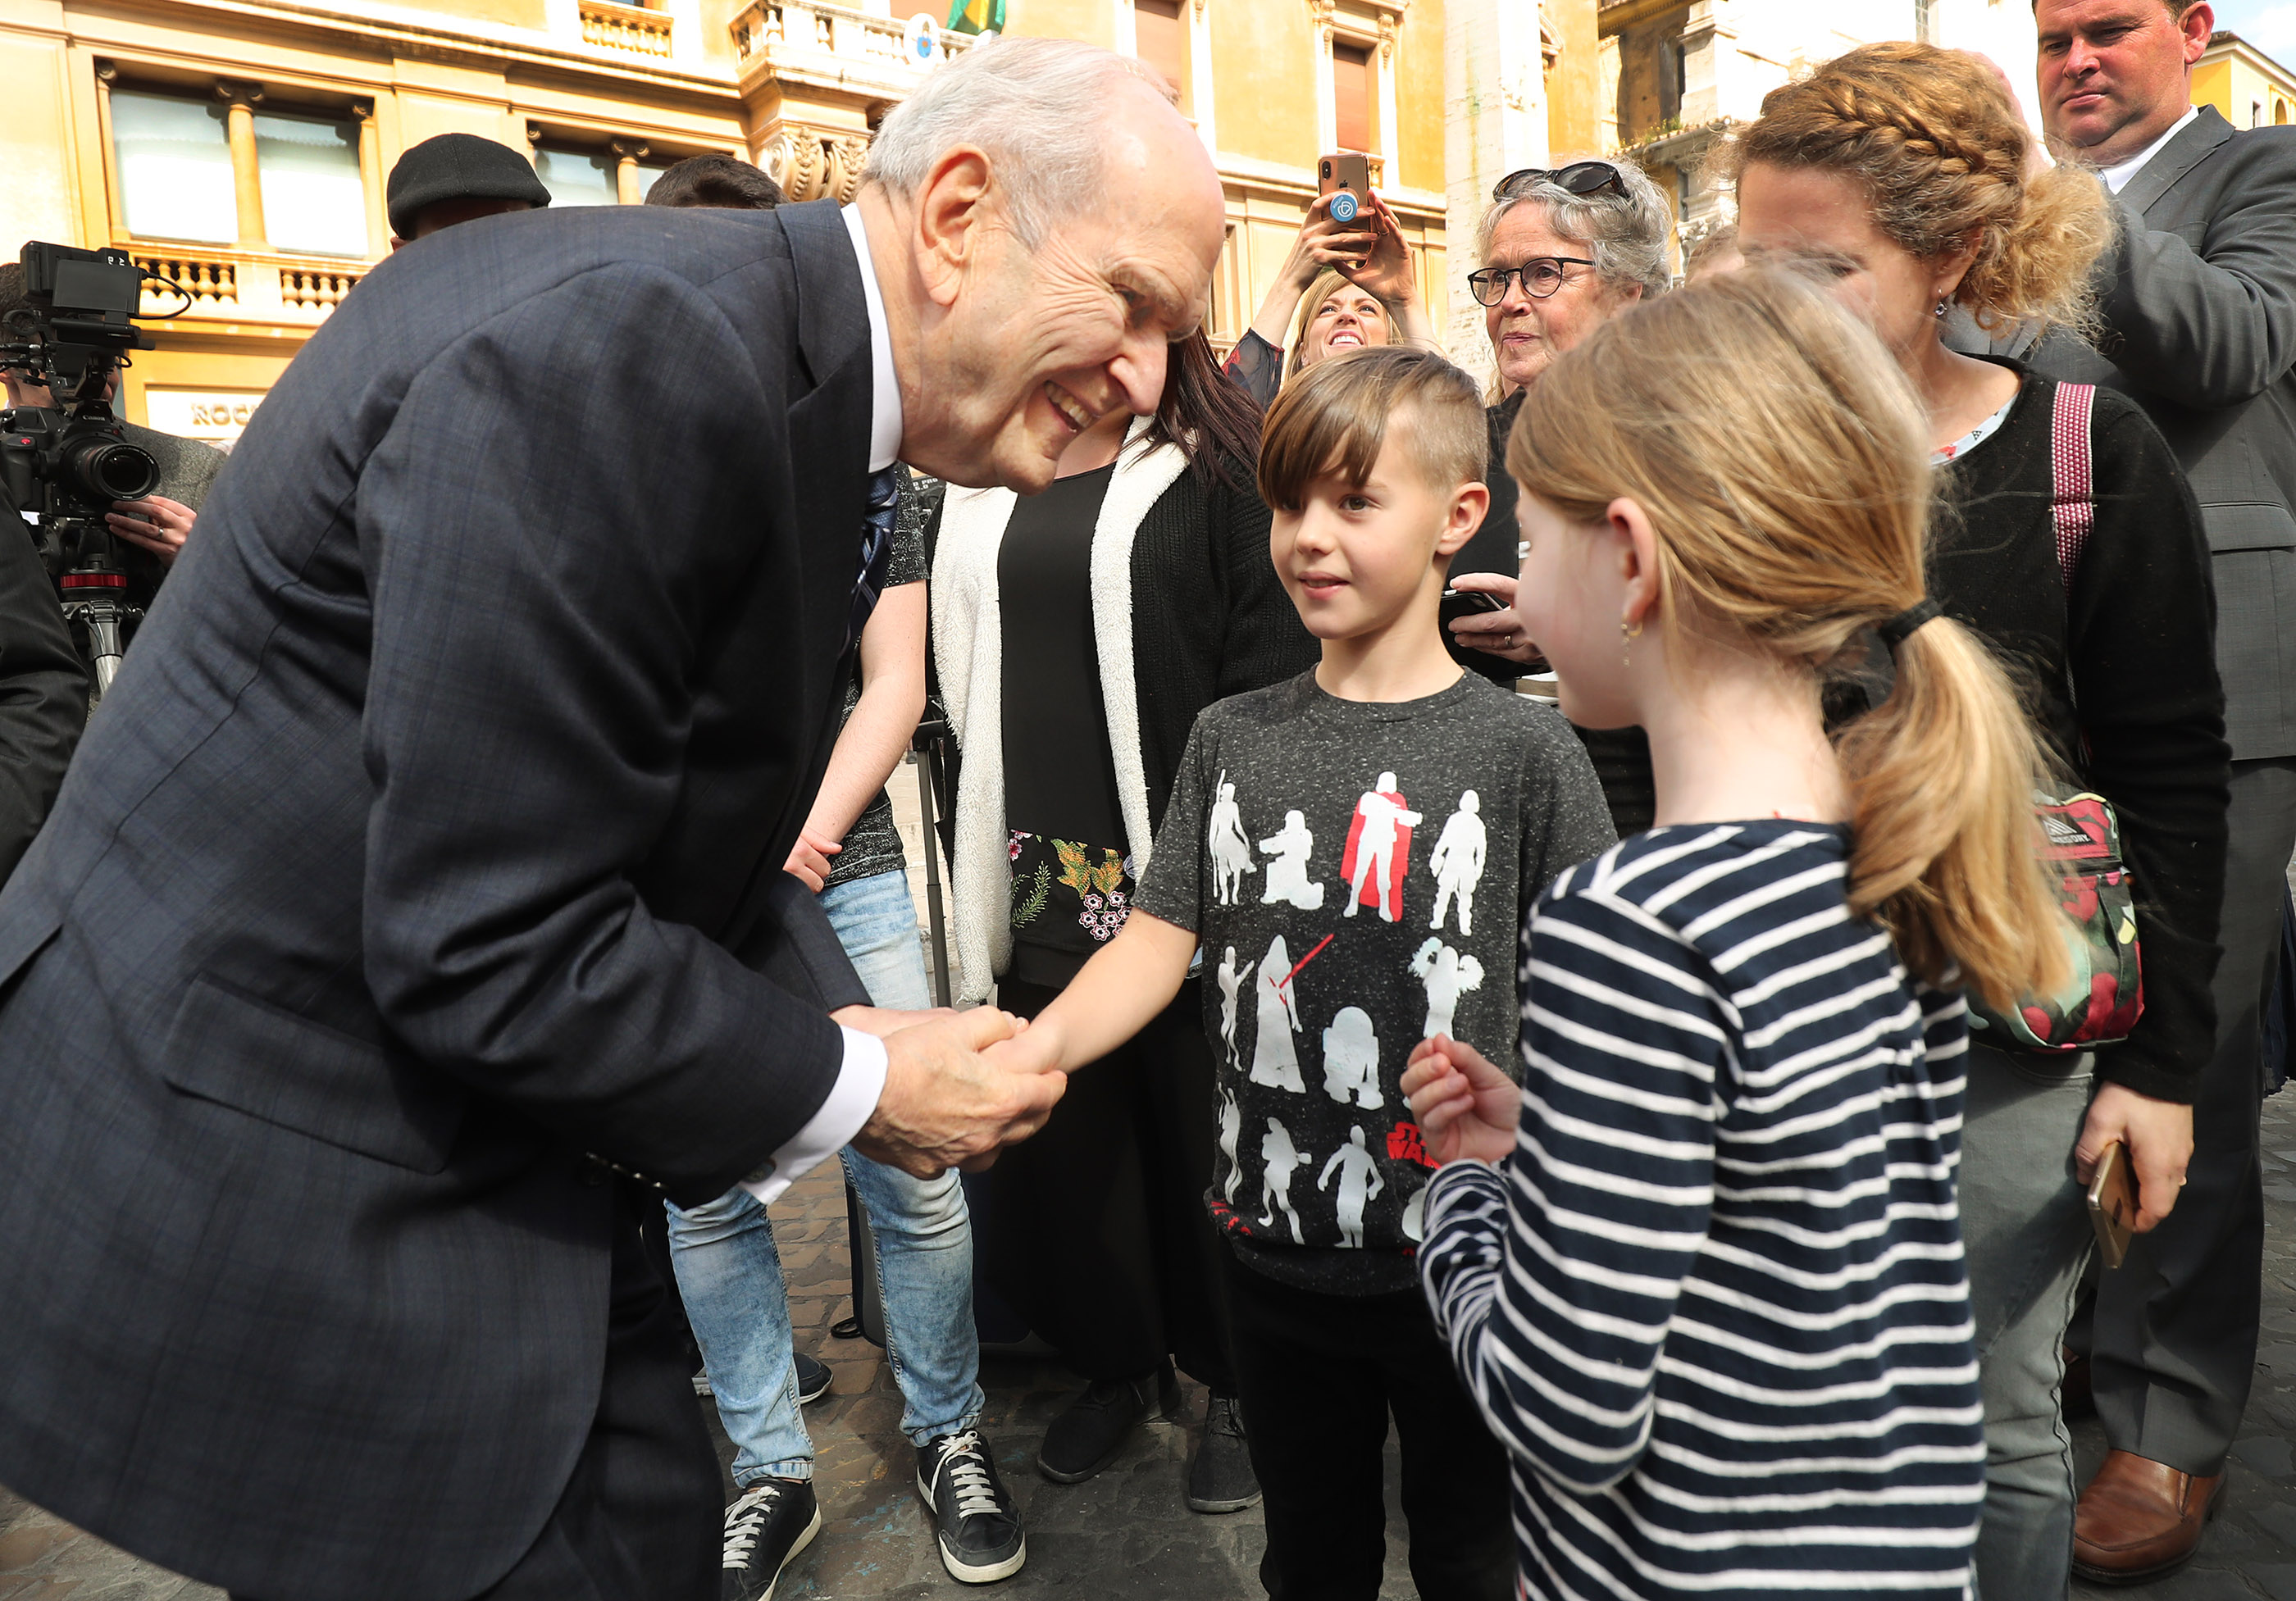 President Russell M. Nelson of The Church of Jesus Christ of Latter-day Saints pauses to talk with Ammon and Emma Schar, of Basel, Switzerland, in Rome, Italy, on Saturday, March 9, 2019. The Schar family is in Rome for the temple dedication.